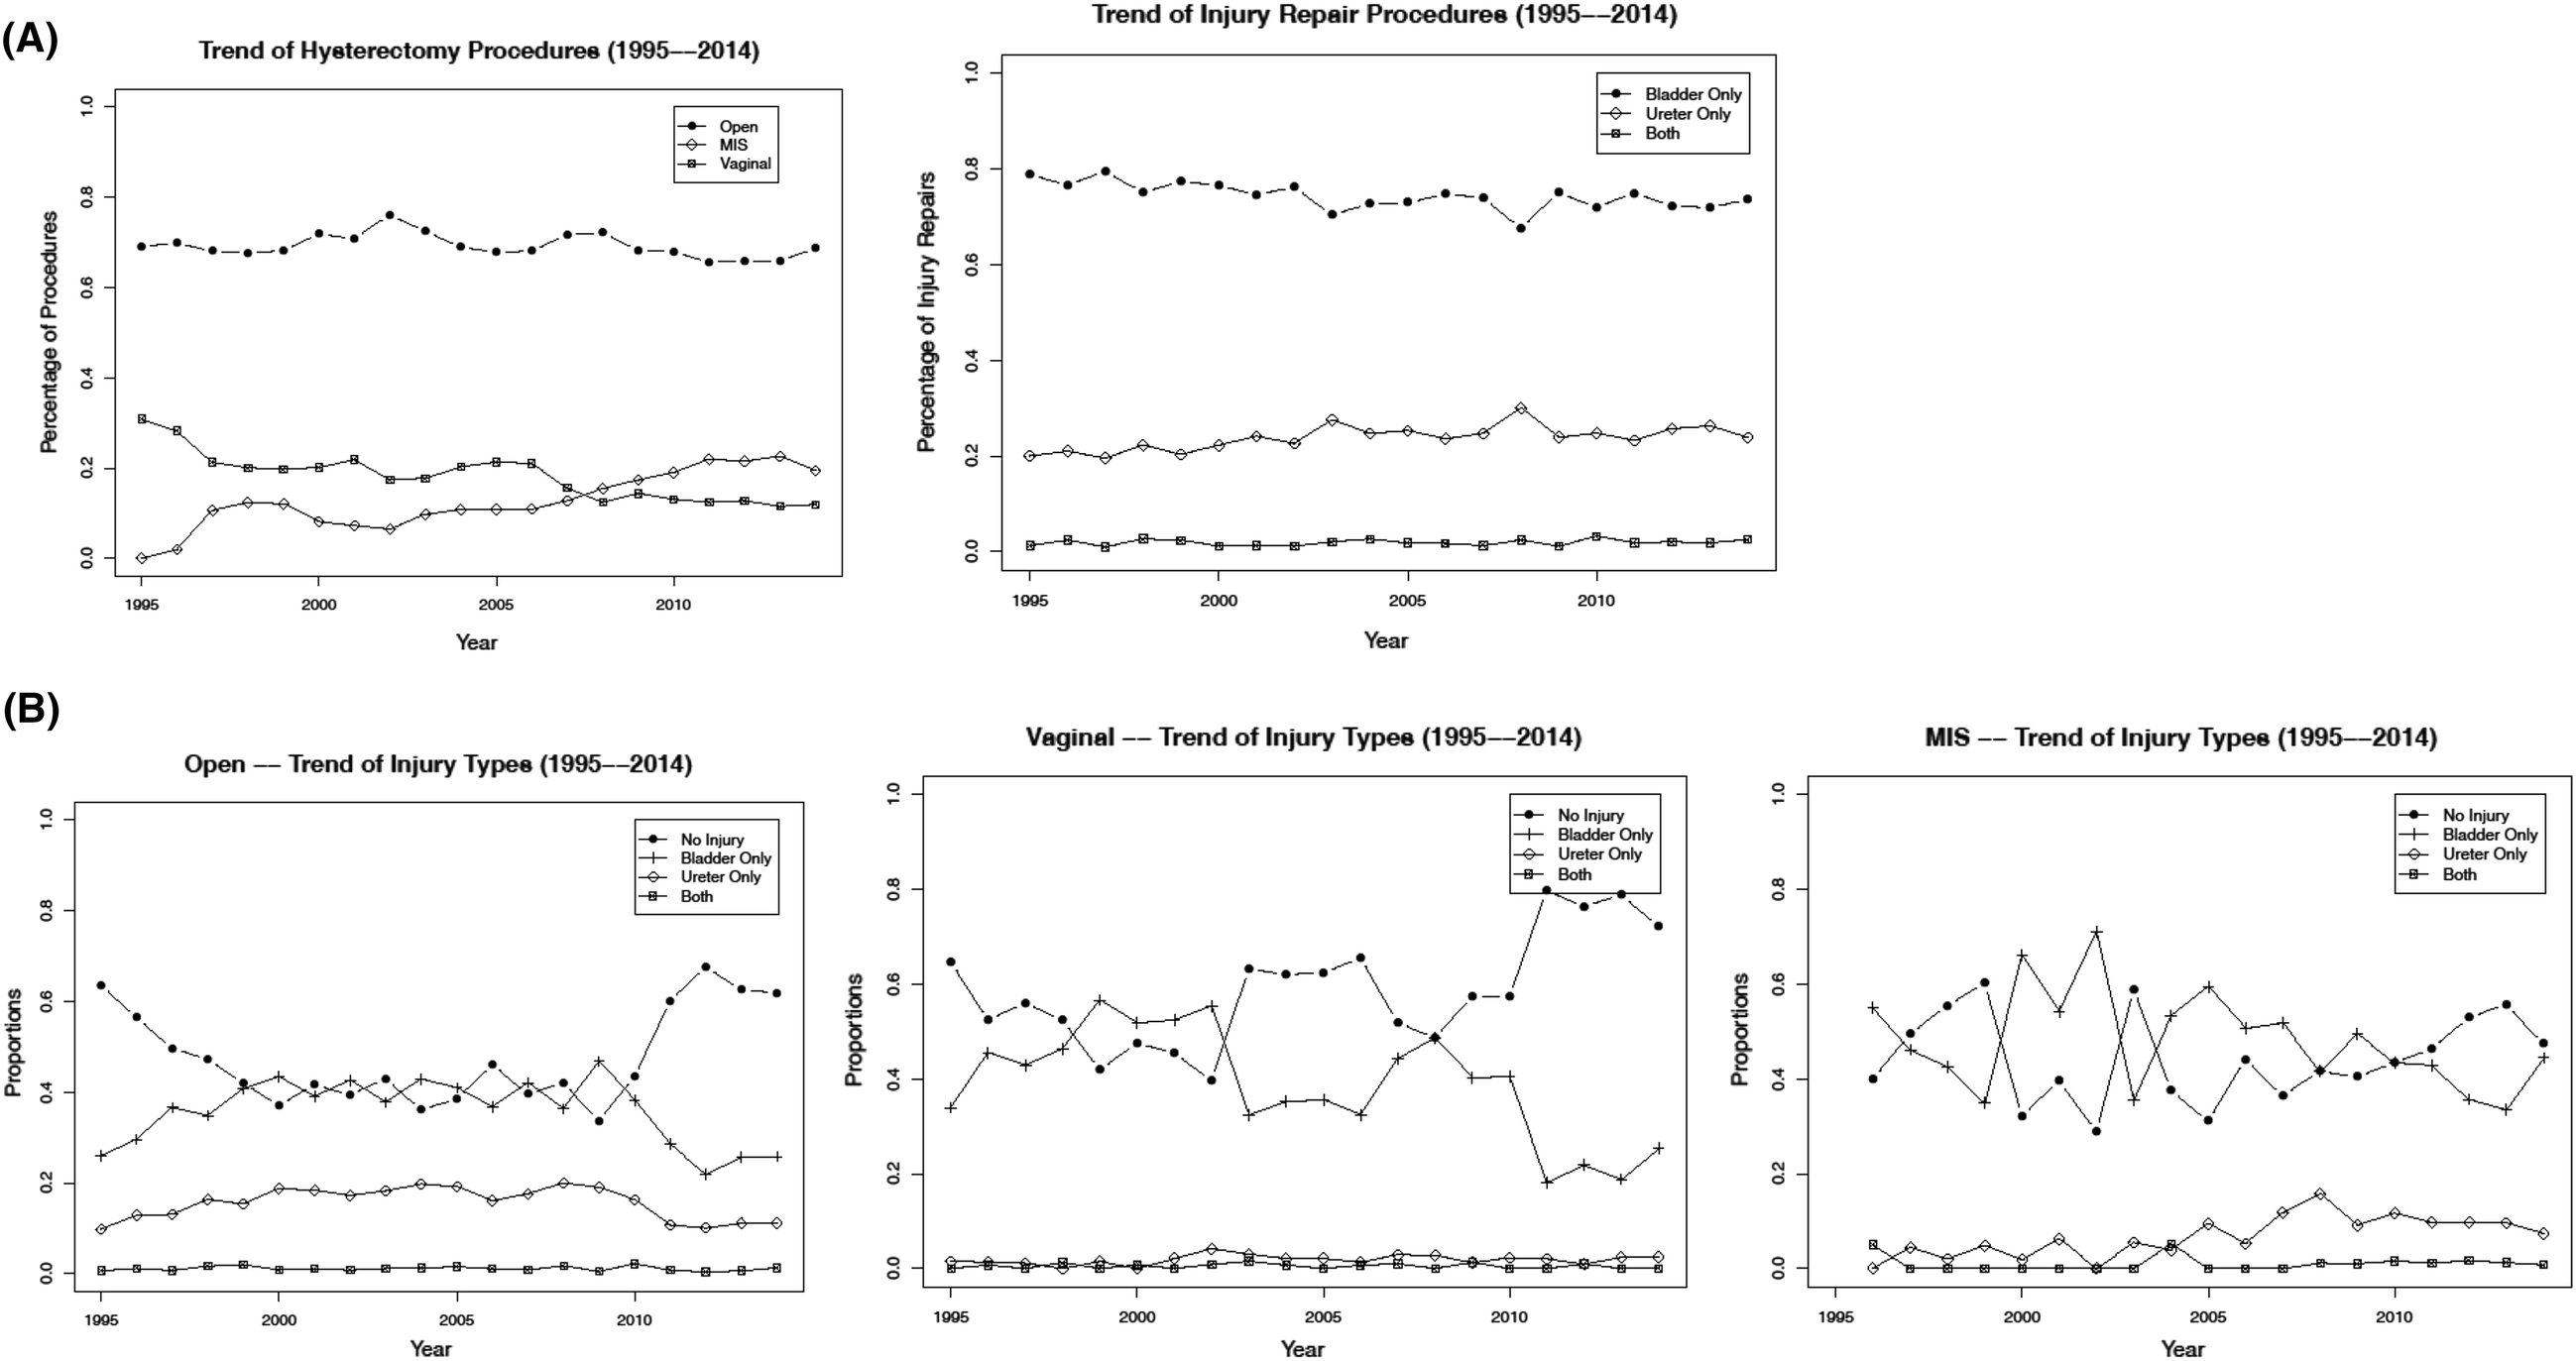 Bladder and ureteral injuries during benign hysterectomy: an